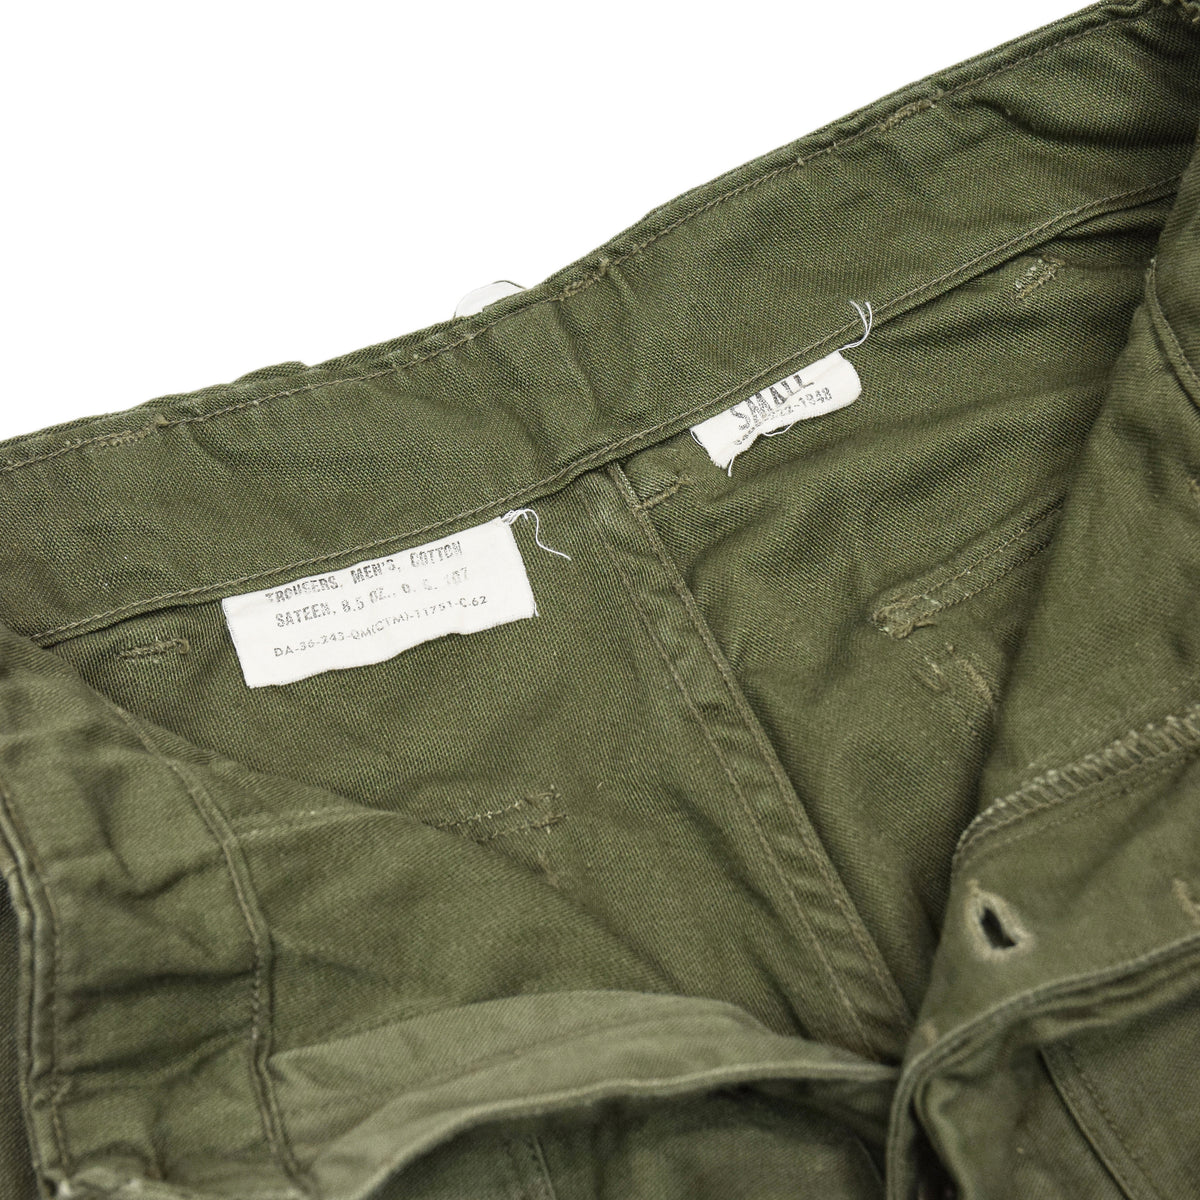 Vintage 60s Vietnam Cotton Sateen Trousers OG-107 Fatigue Pants Small 26 - 28W inner labels